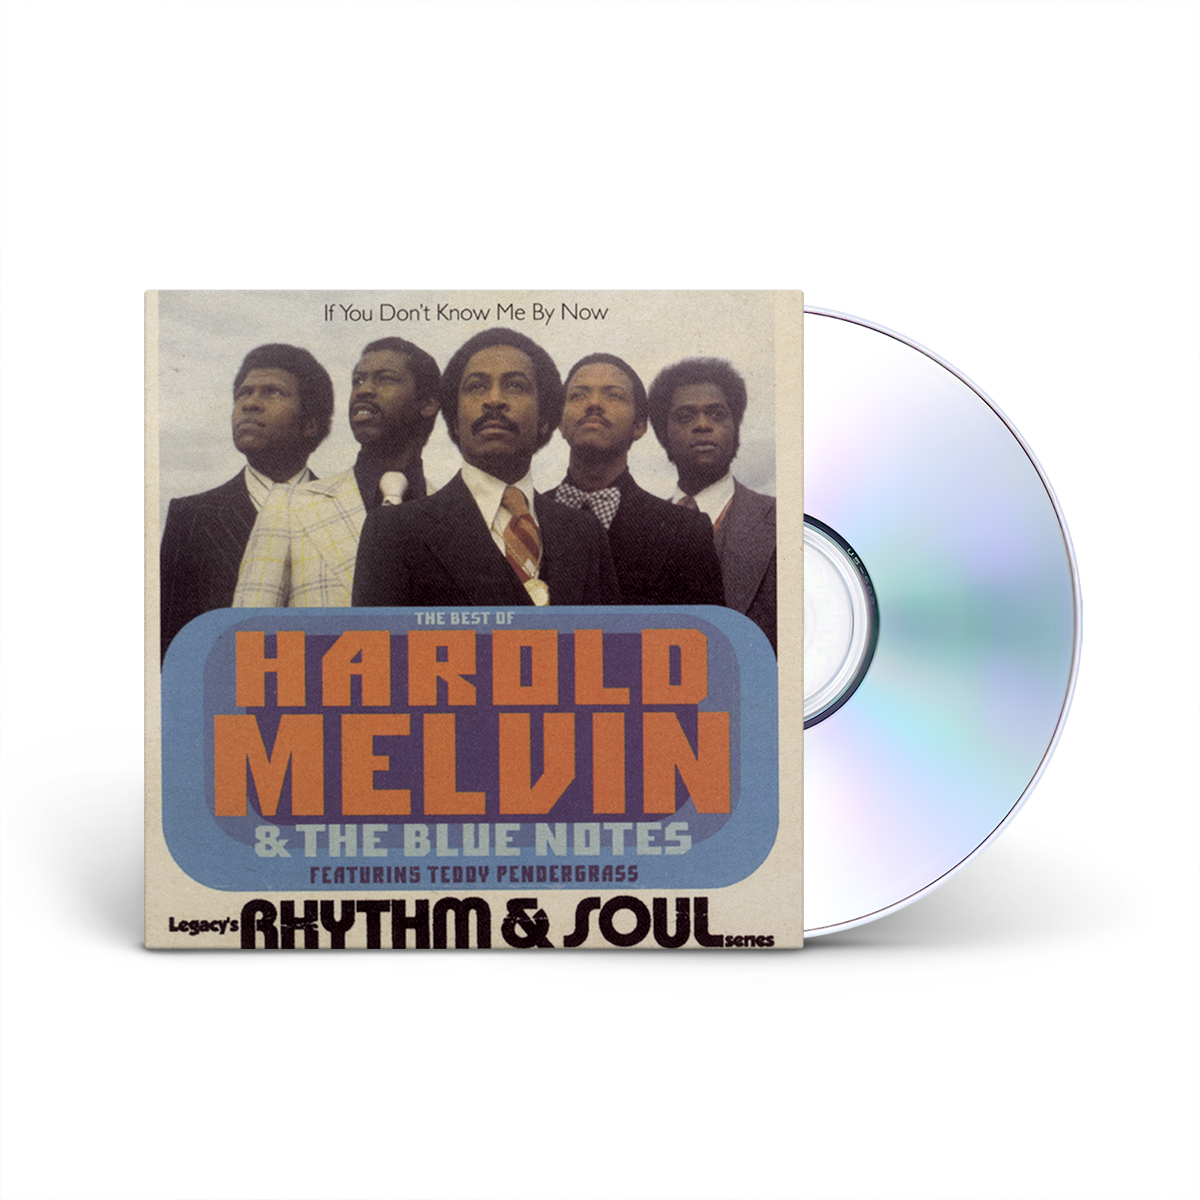 The Best Of Harold Melvin & The Blue Notes: If You Don't Know Me By Now (Feat. Teddy Pendergrass) CD